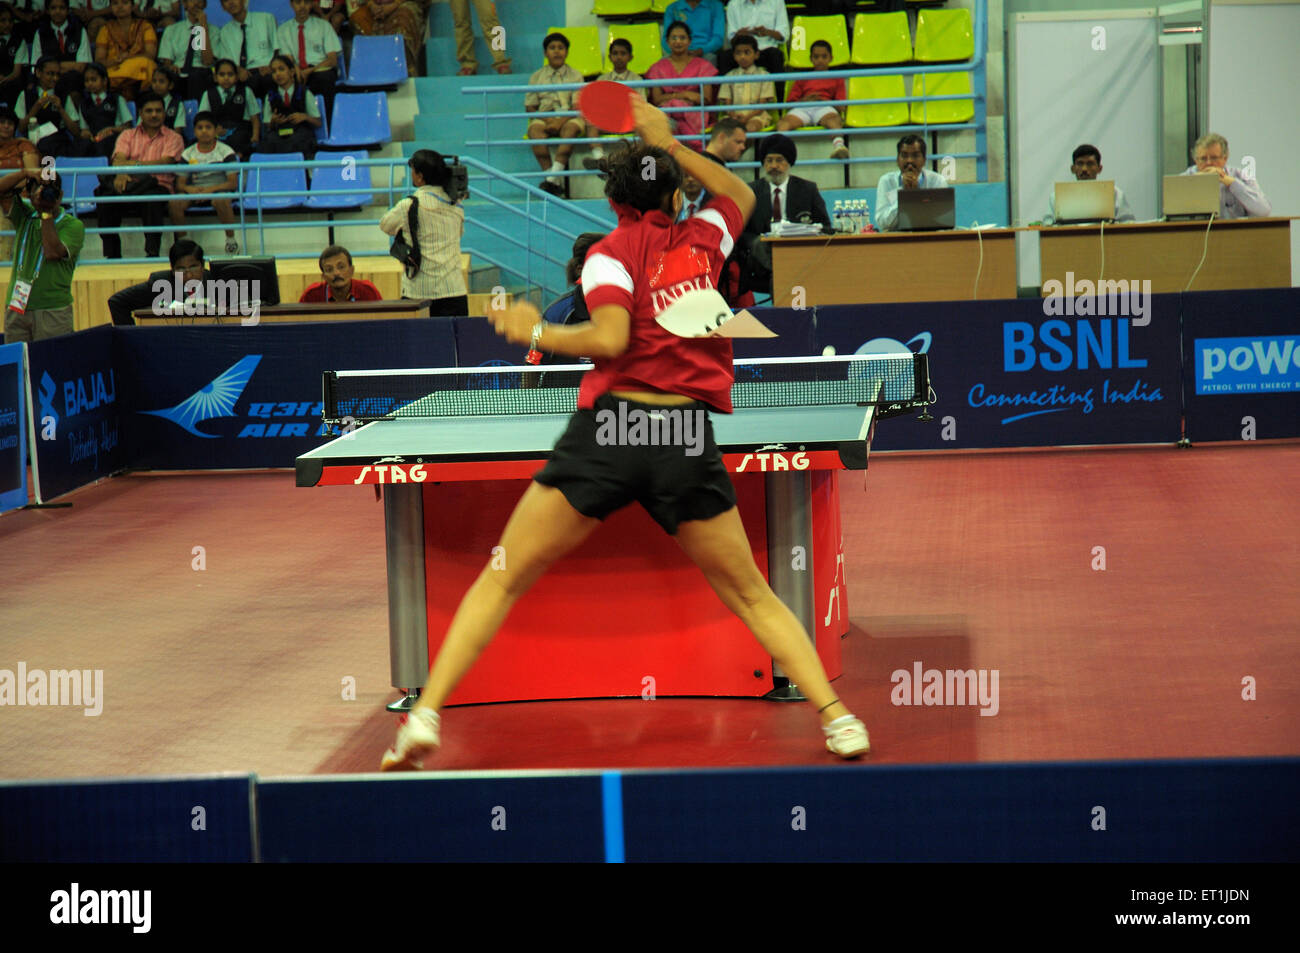 Neha aggarwal playing table tennis ; Pune ; Maharashtra ; India 15 October 2008 NOMR - Stock Image